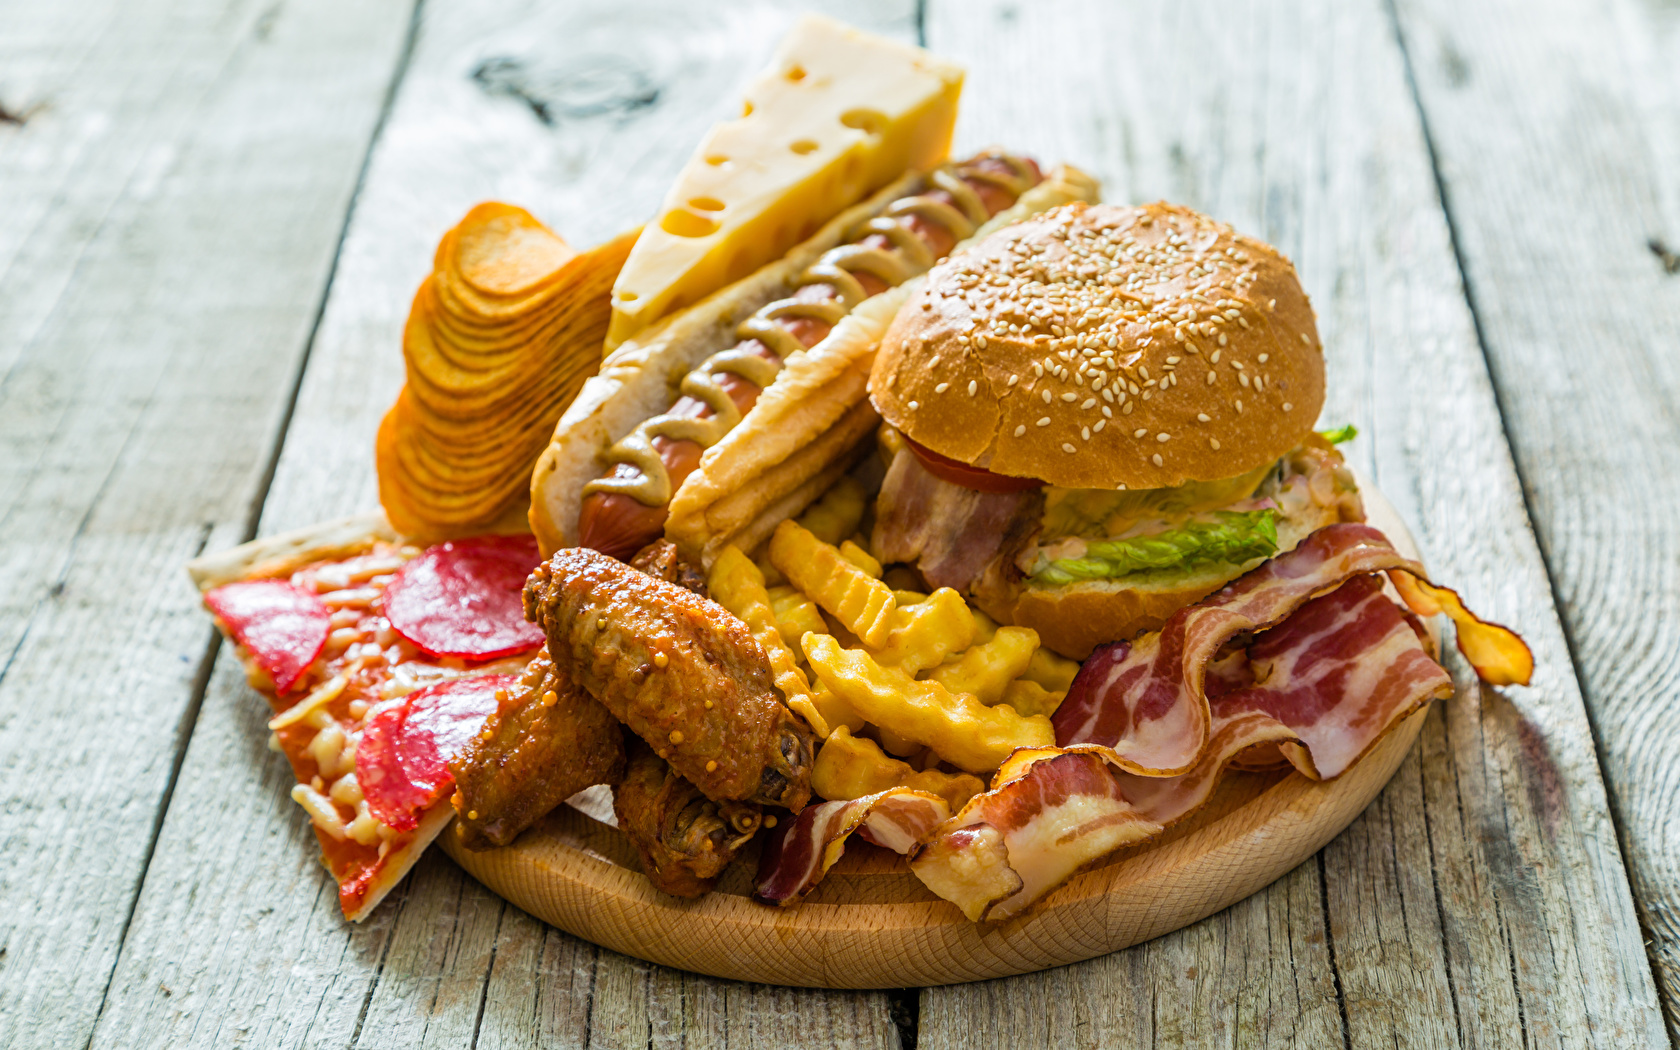 Image Chips Hot dog Hamburger finger chips Cheese Fast 1680x1050 1680x1050